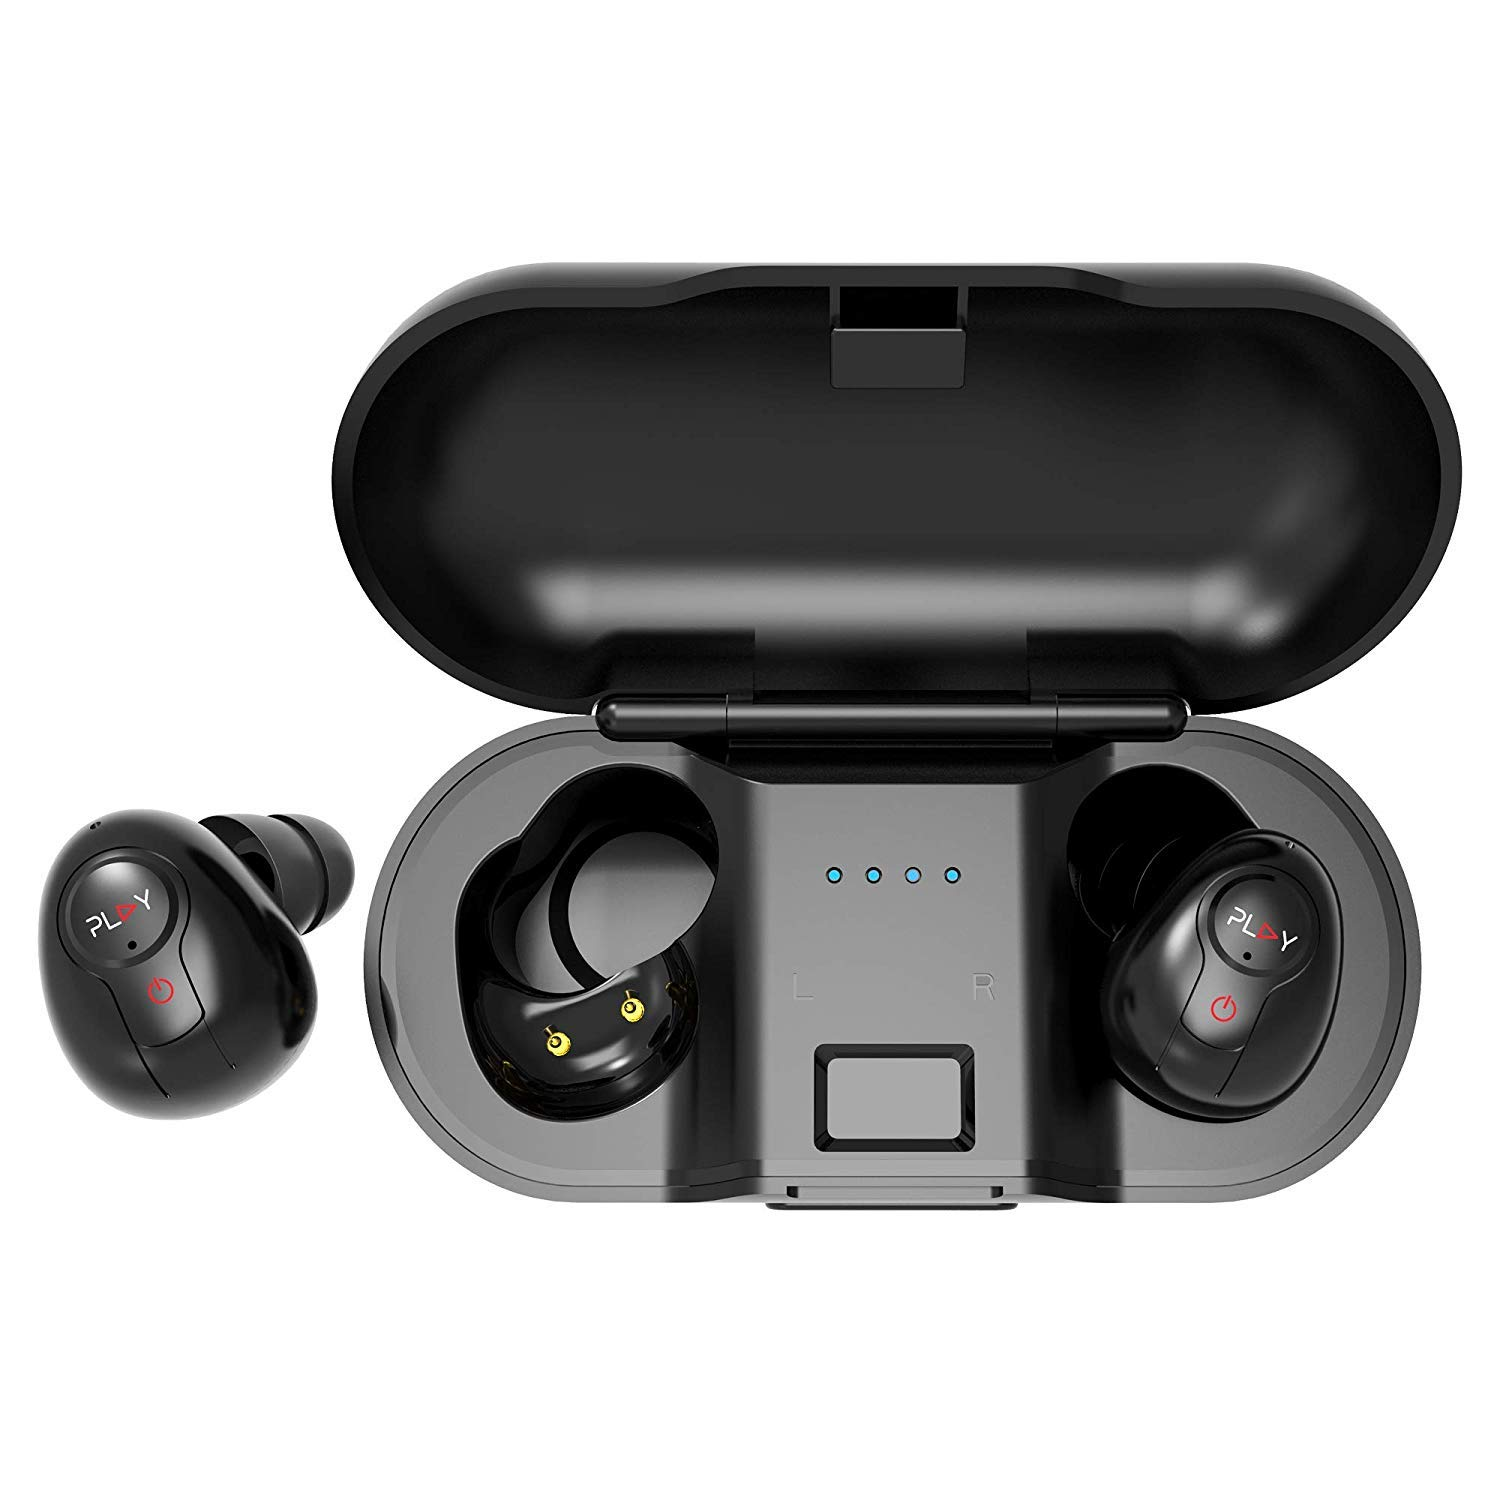 Bass Evolution Play Bluetooth 5 0 True Wireless Earbuds Amazon In Electronics